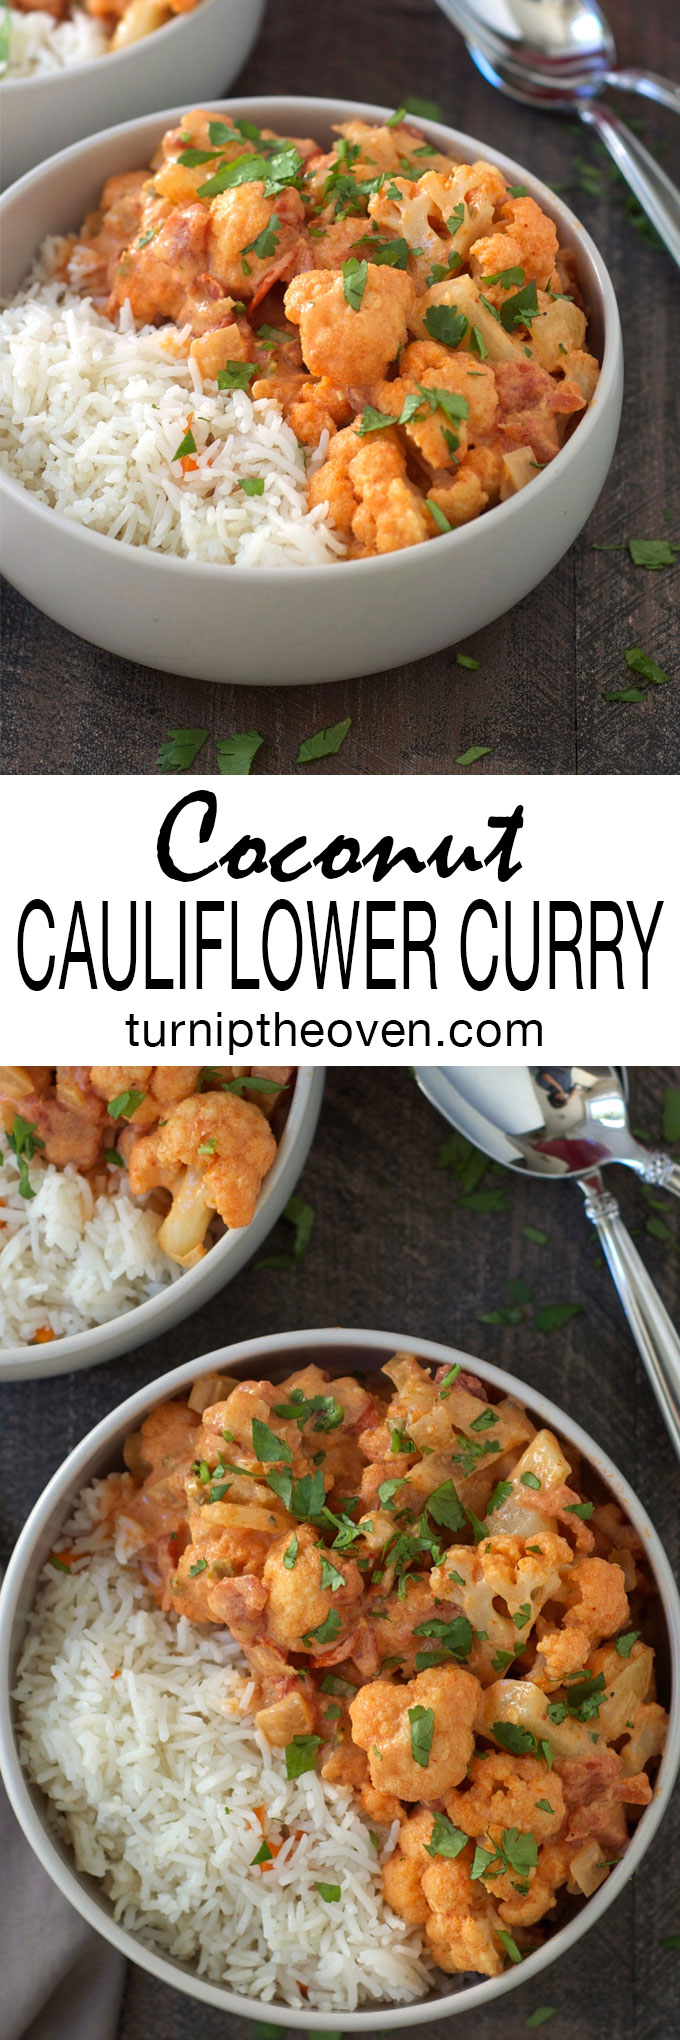 This coconut cauliflower curry is the perfect healthy, vegan, and gluten-free weeknight meal--with a little bit of spice!